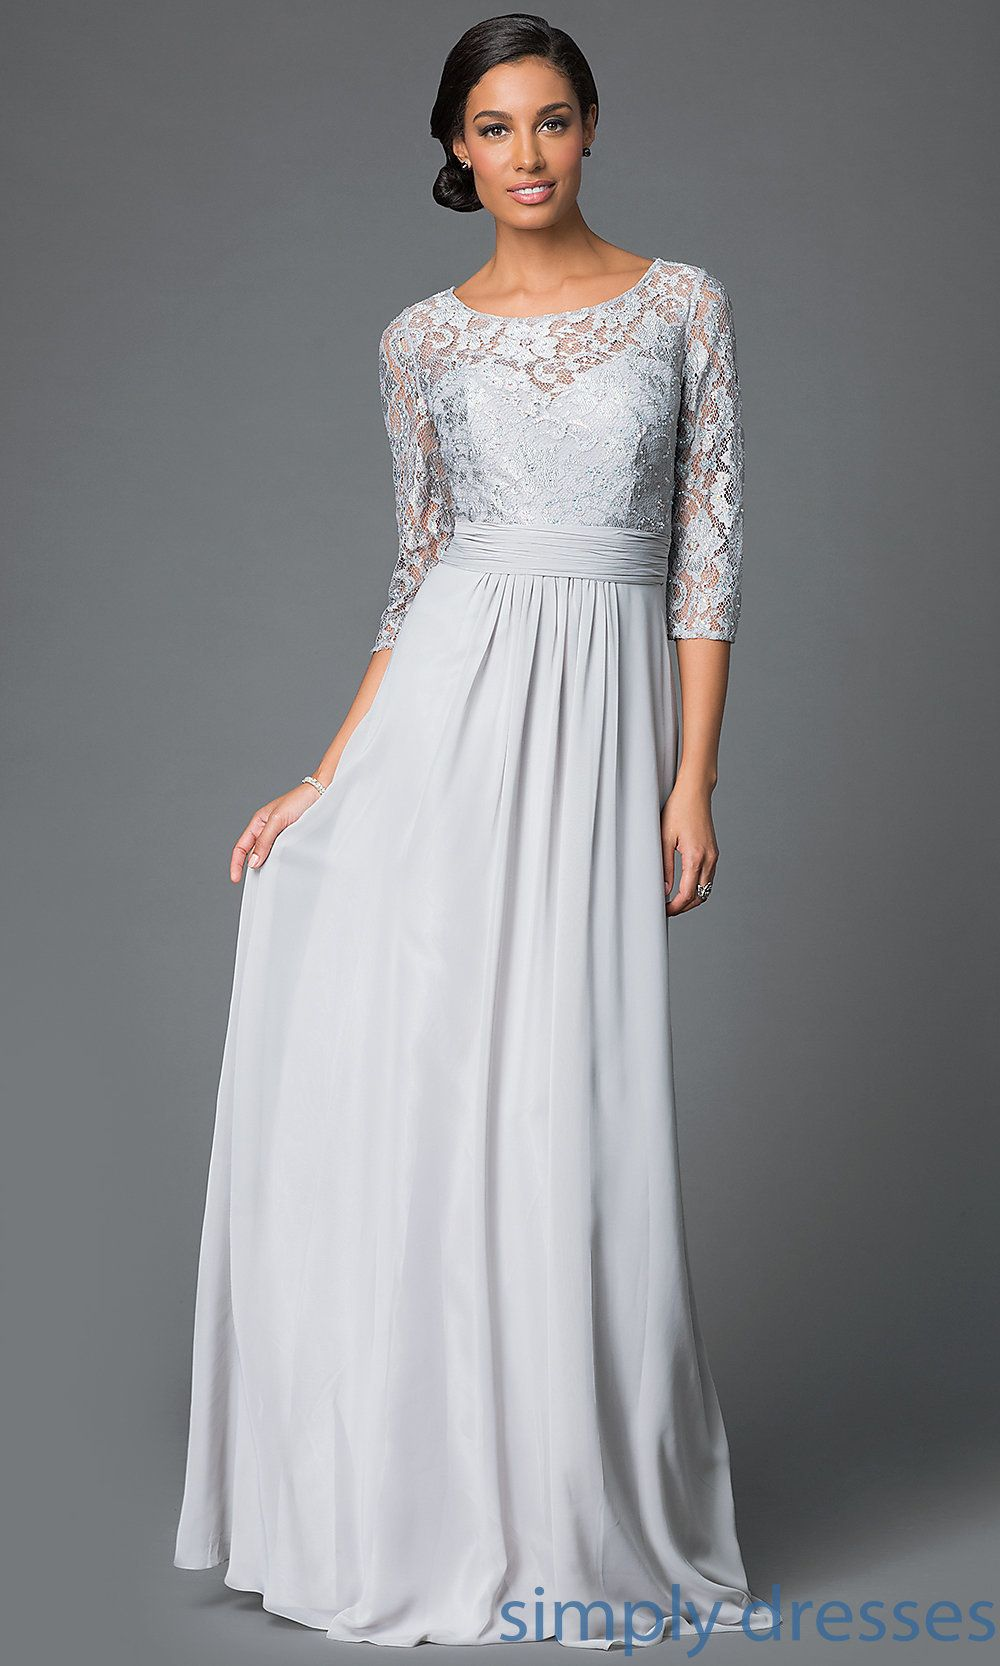 Floor length formal gown with lace bodice and three quarter length